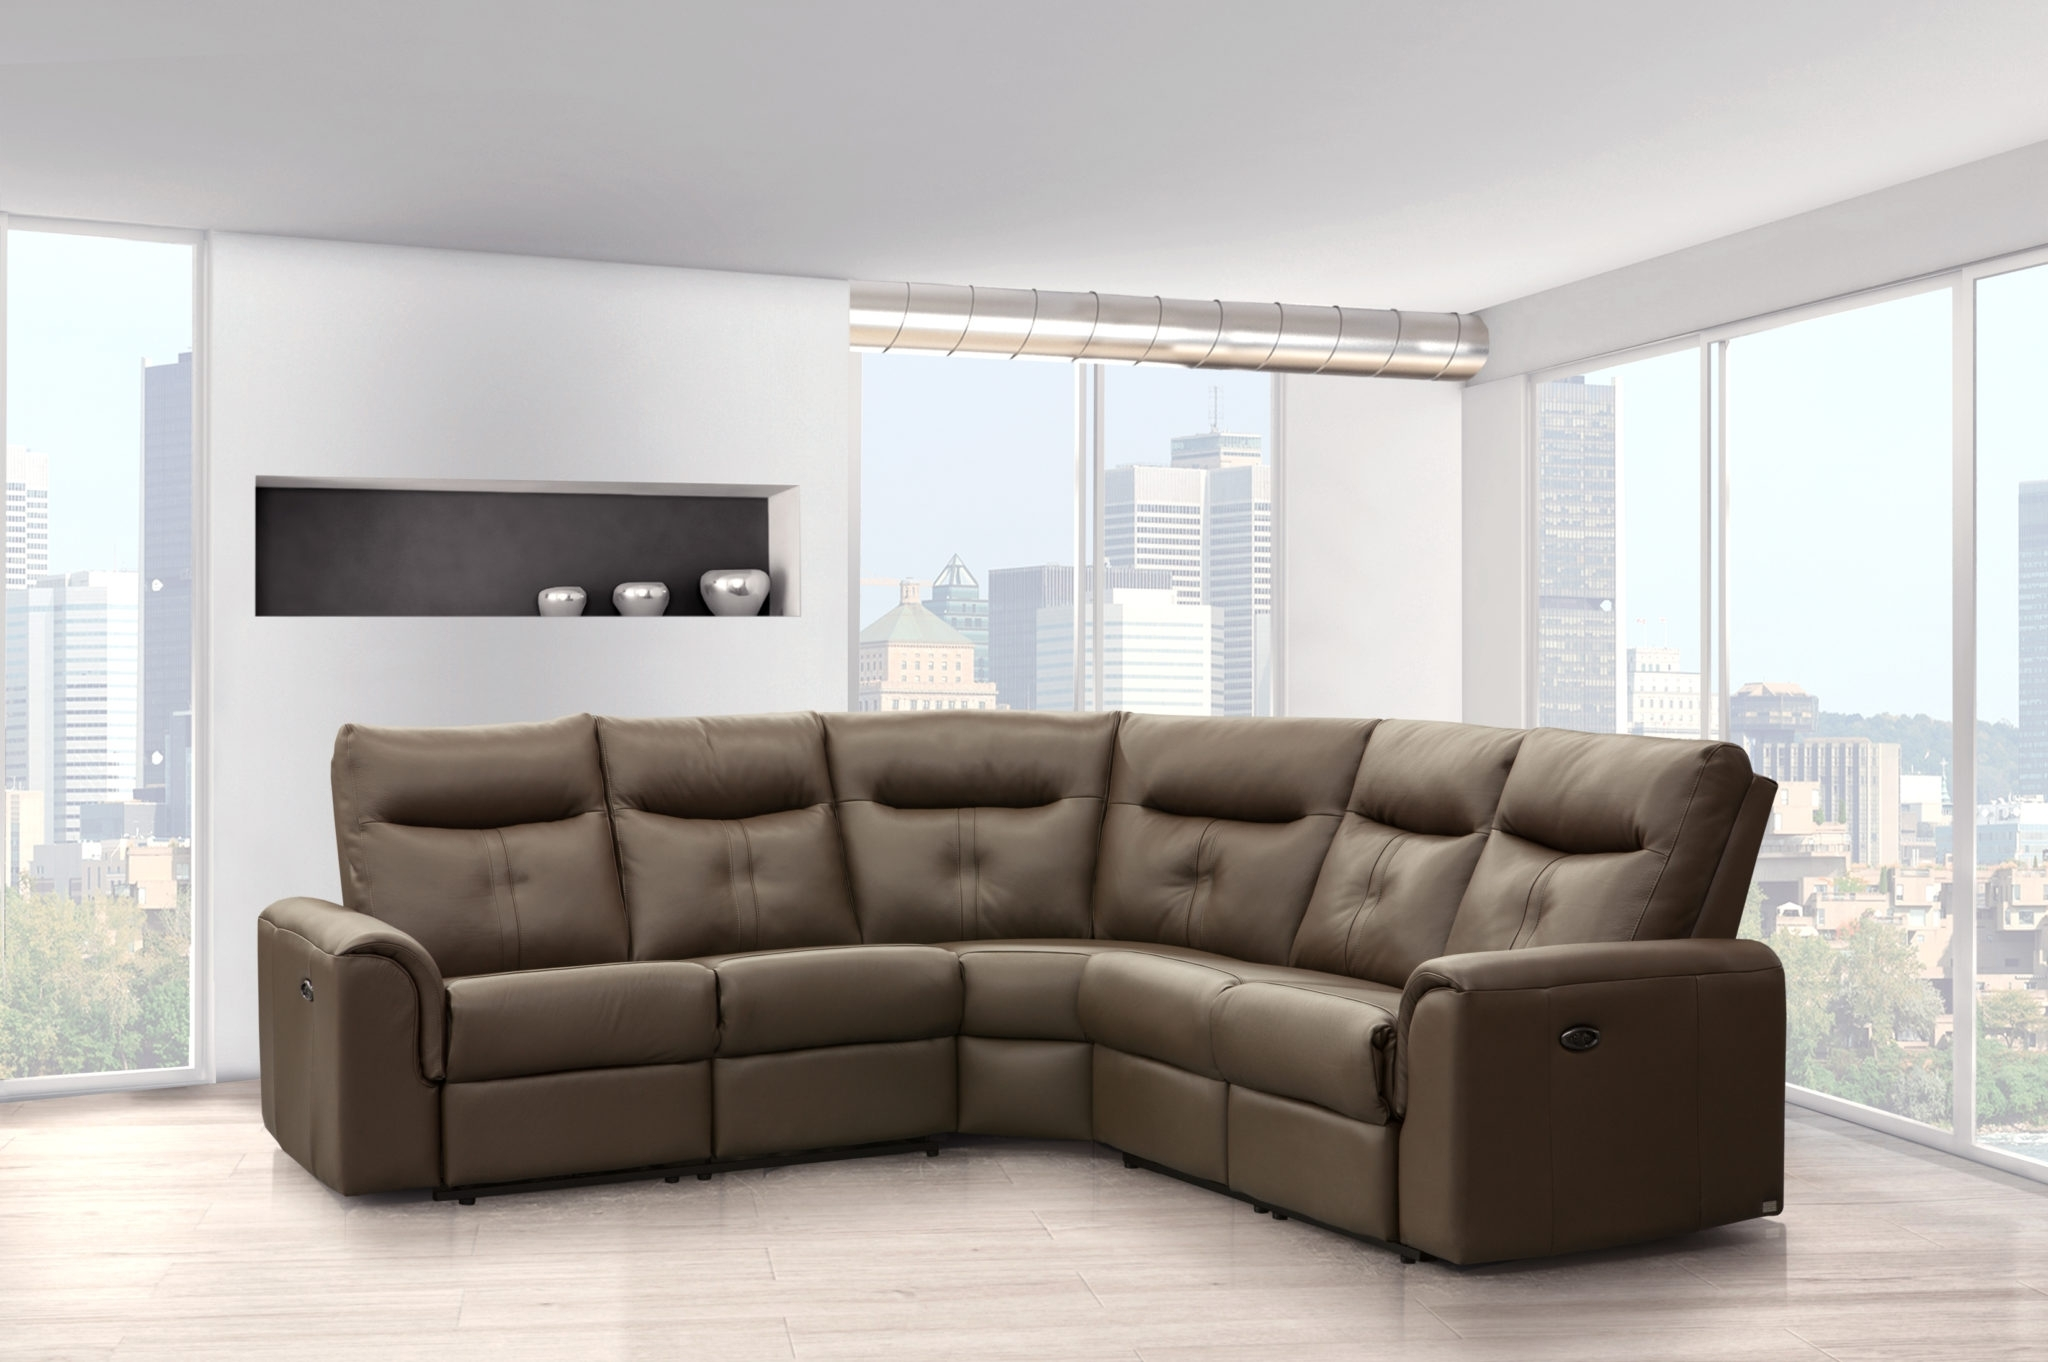 Newfoundland Sectional Sofas Intended For Preferred Elran 4016 Electric Reclining Leather Sectional (View 15 of 15)